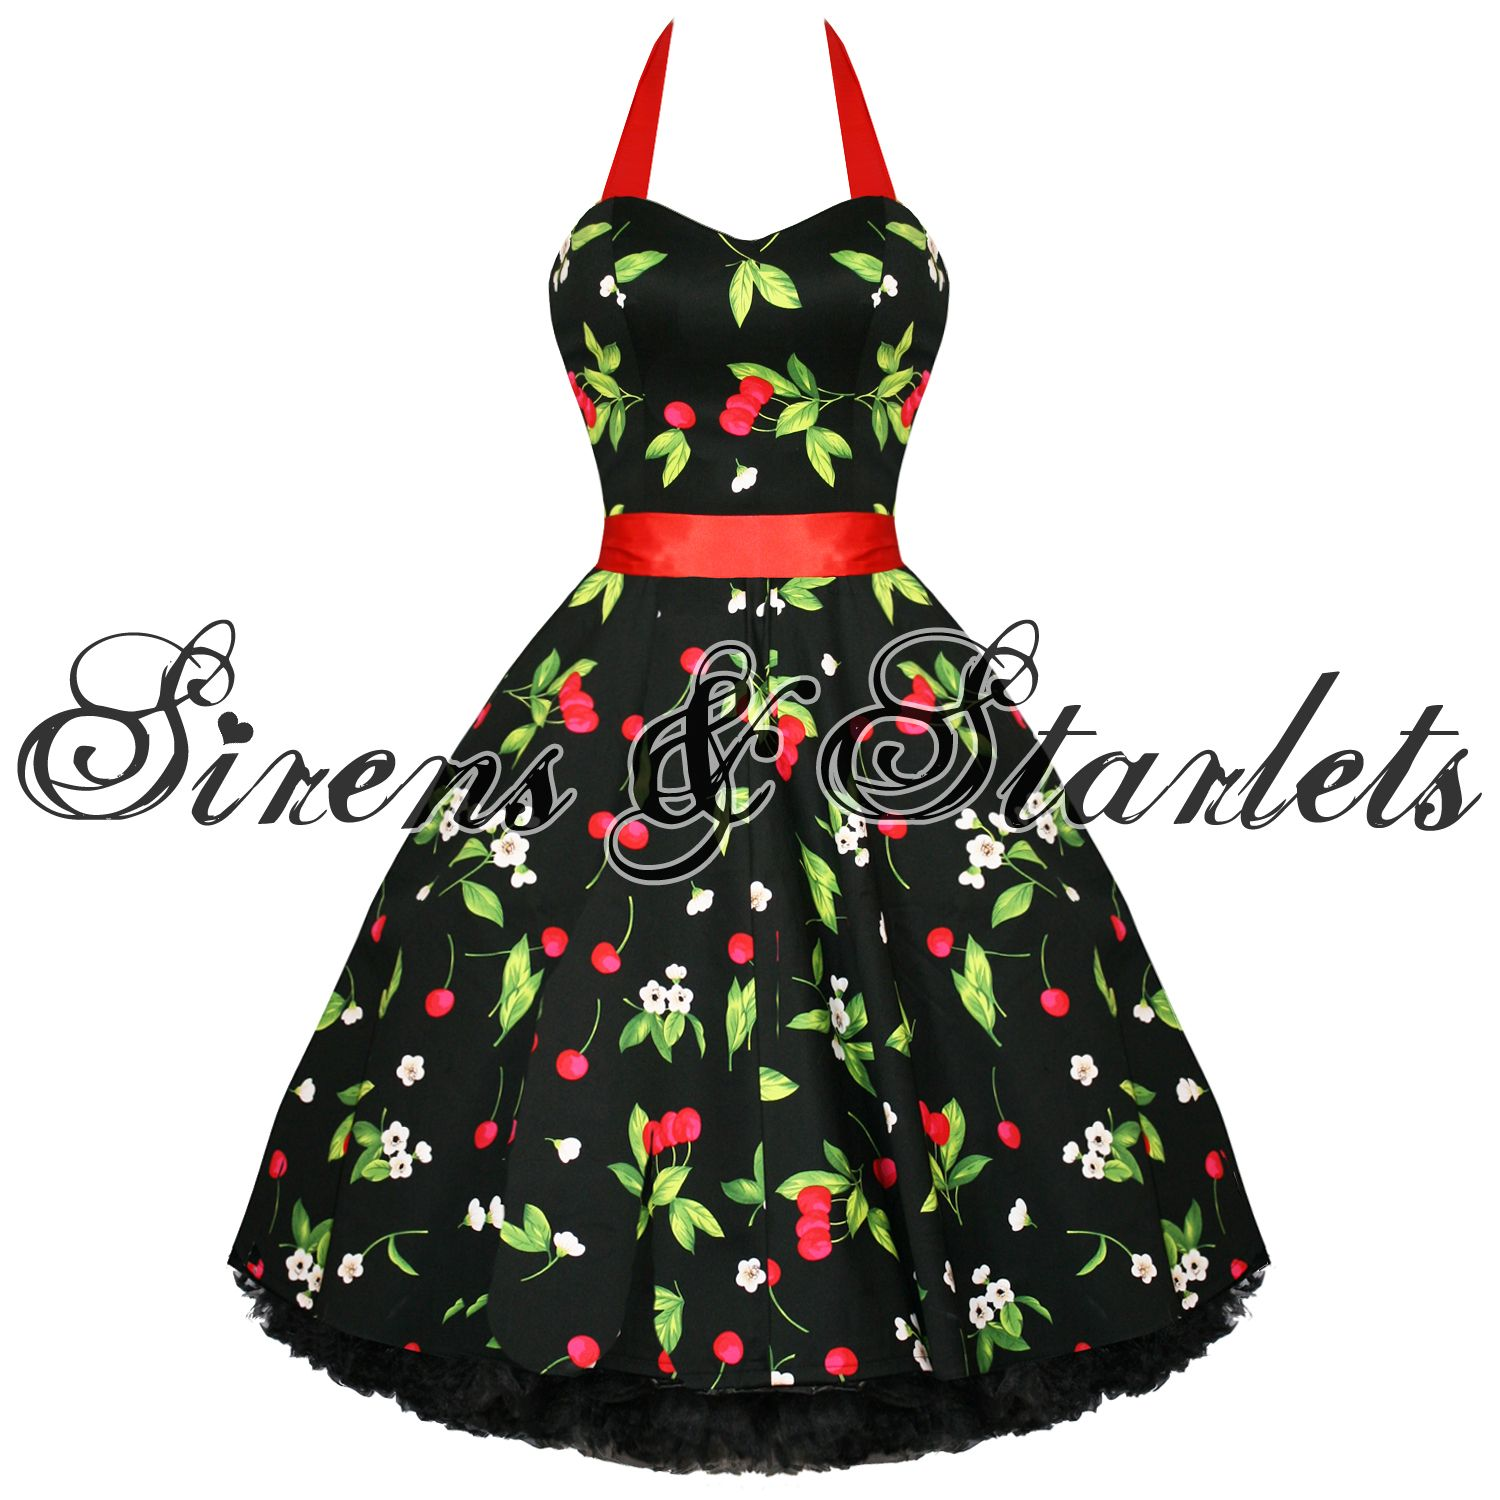 Ladies new black red cherry vtg s swing pinup party prom dress